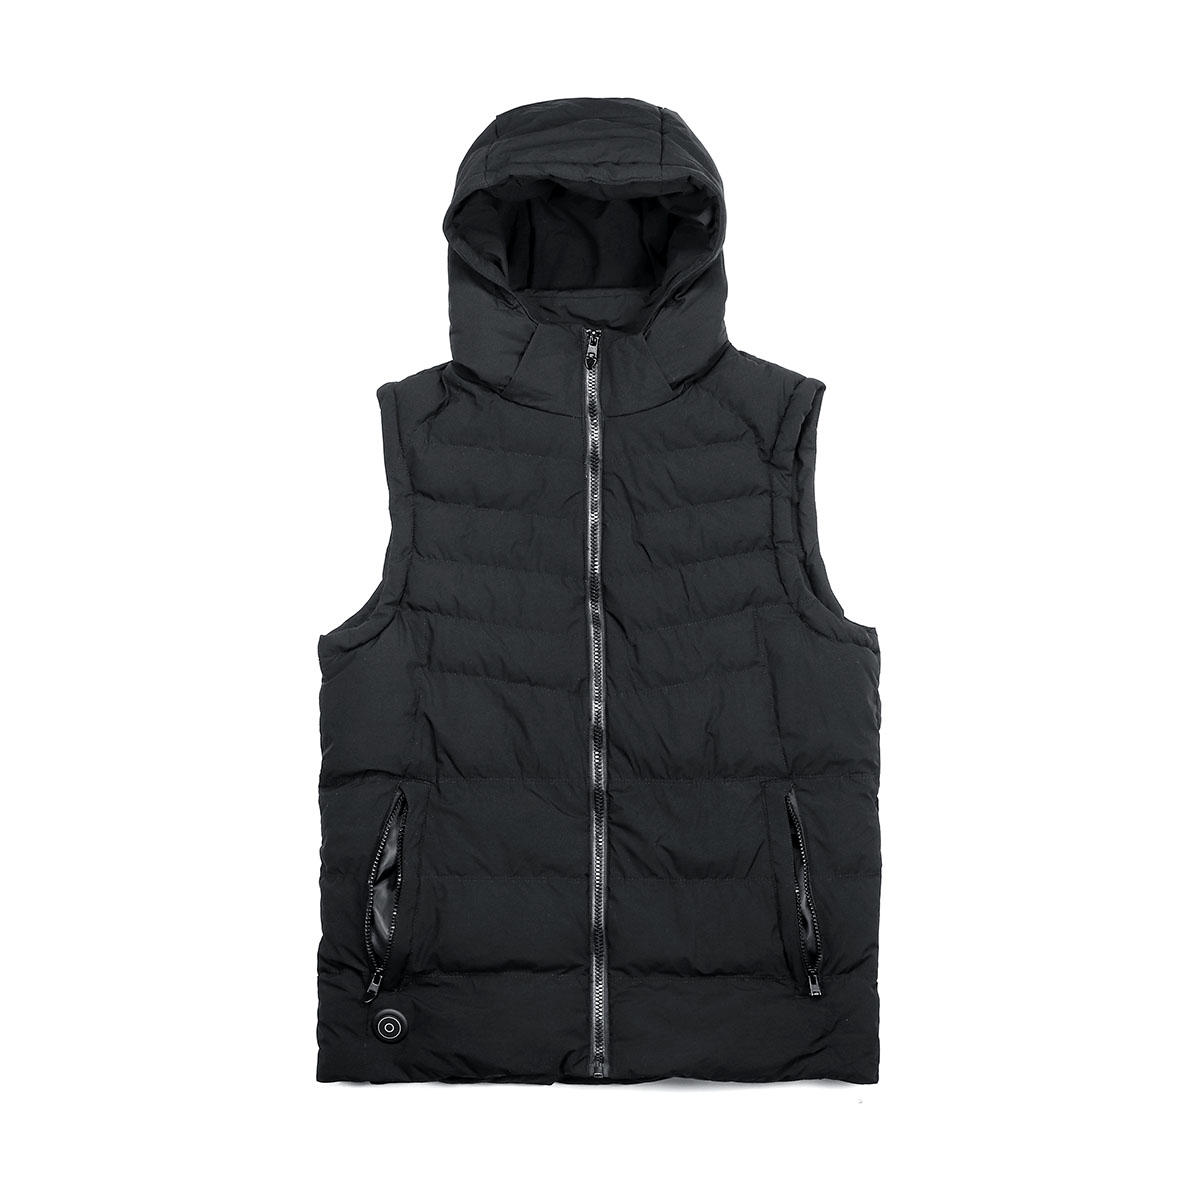 Winter Electric Battery Heating USB Sleeveless Vest Temperature Outdoor Jacket